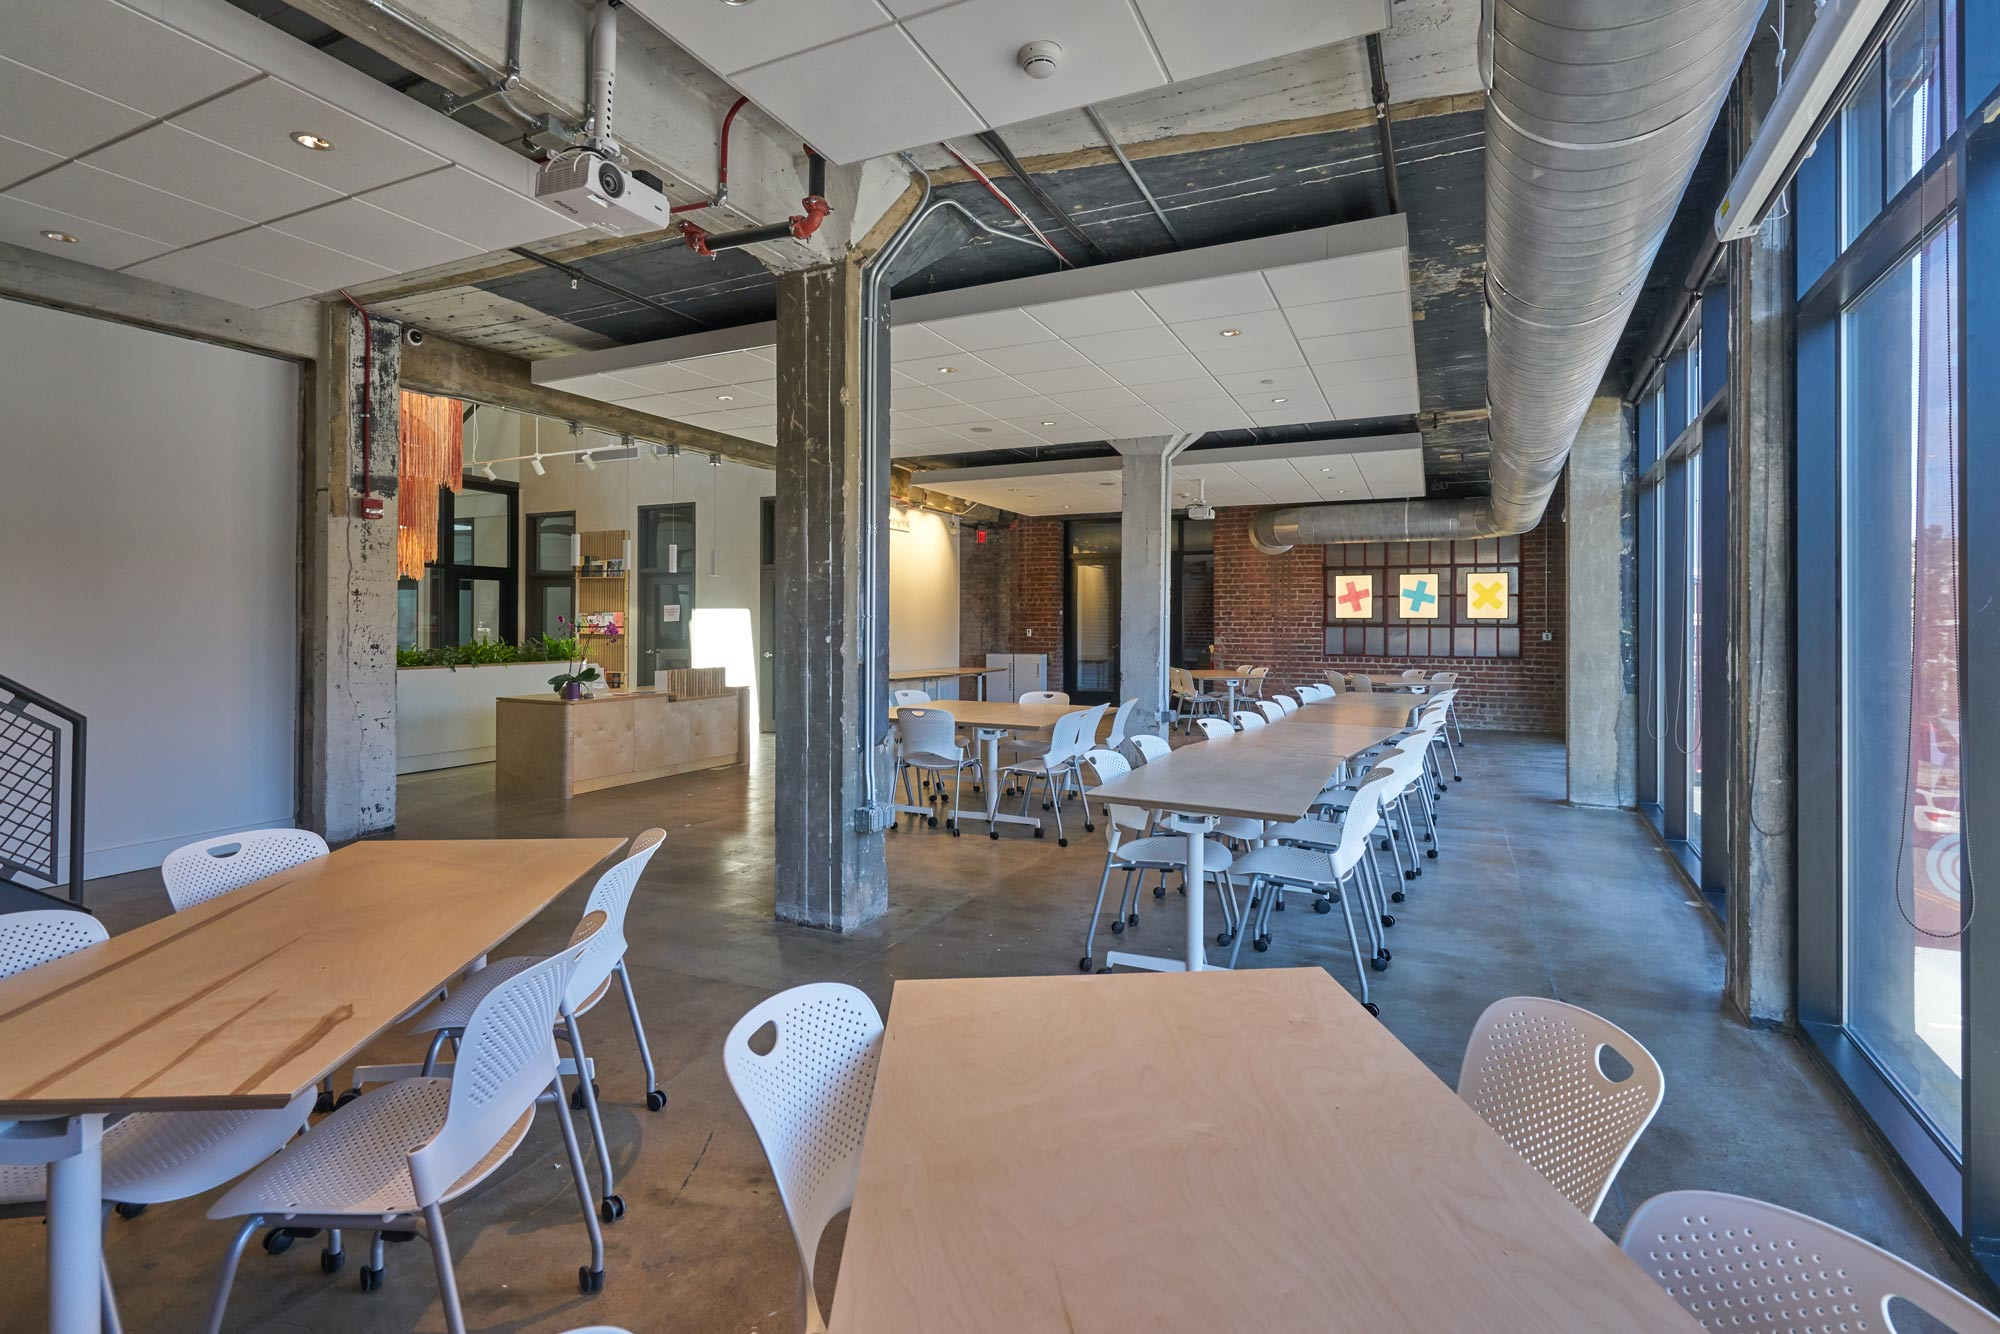 An industrial, open spaces with exposed brick and many tables and chairs.